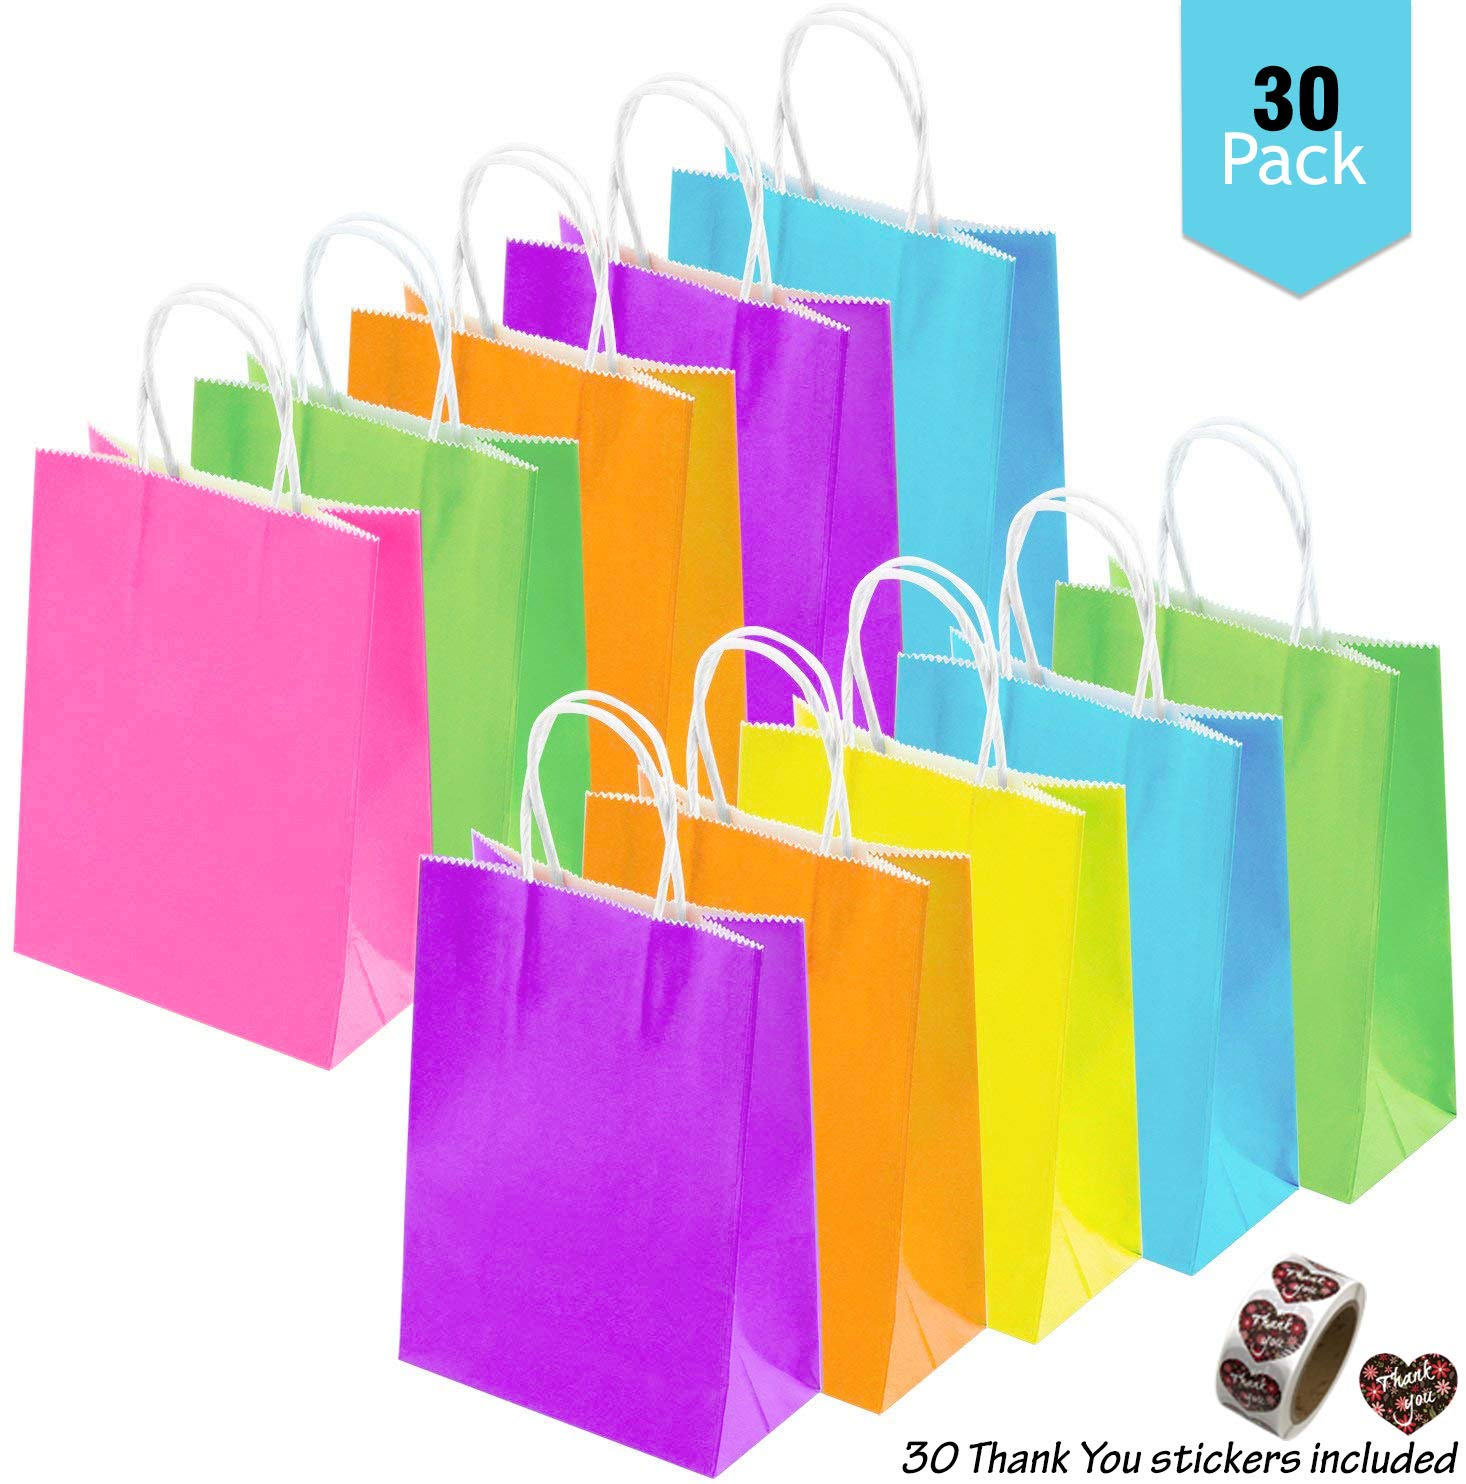 30 Pieces Of Party Favor Bags with Handle AND 30 DIY Thank You Stickers 6 Vibrant Colors For Birthdays Candies Party Wedding Gifts Favor Bubble School Christmas Baby Shower Halloween ThanksGiving Squishes Toys Food